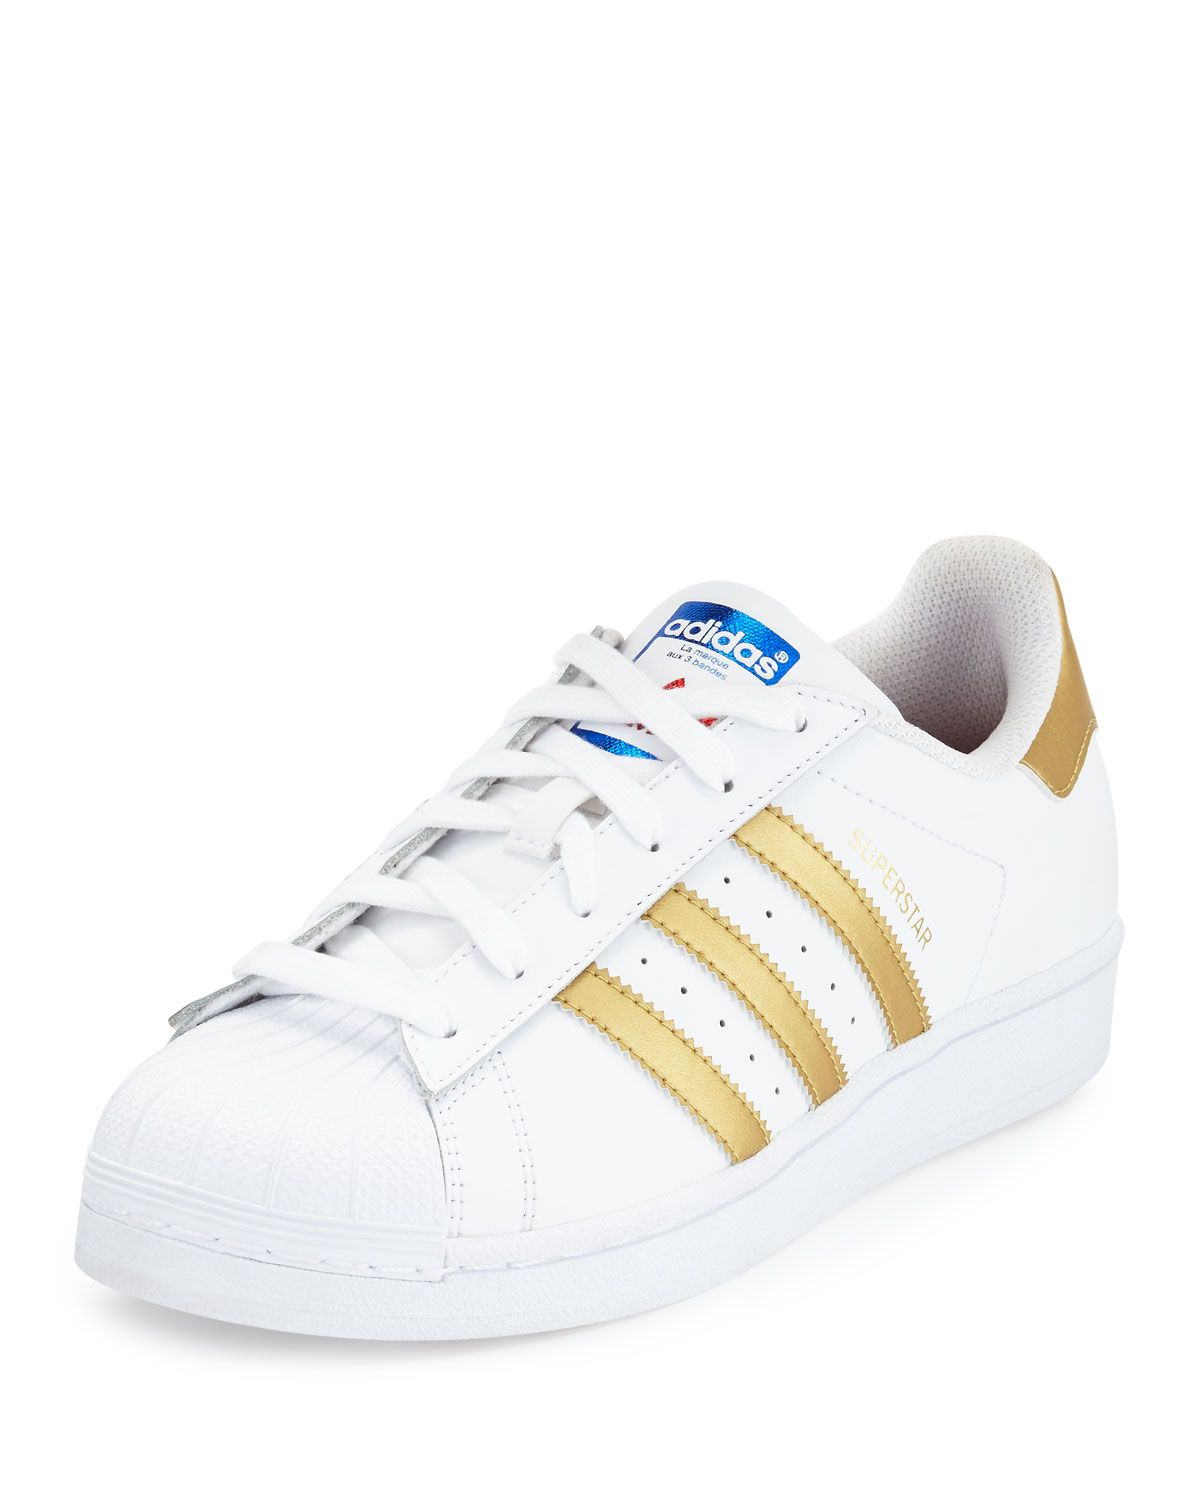 321c98229c adidas Superstar Original Fashion Sneaker